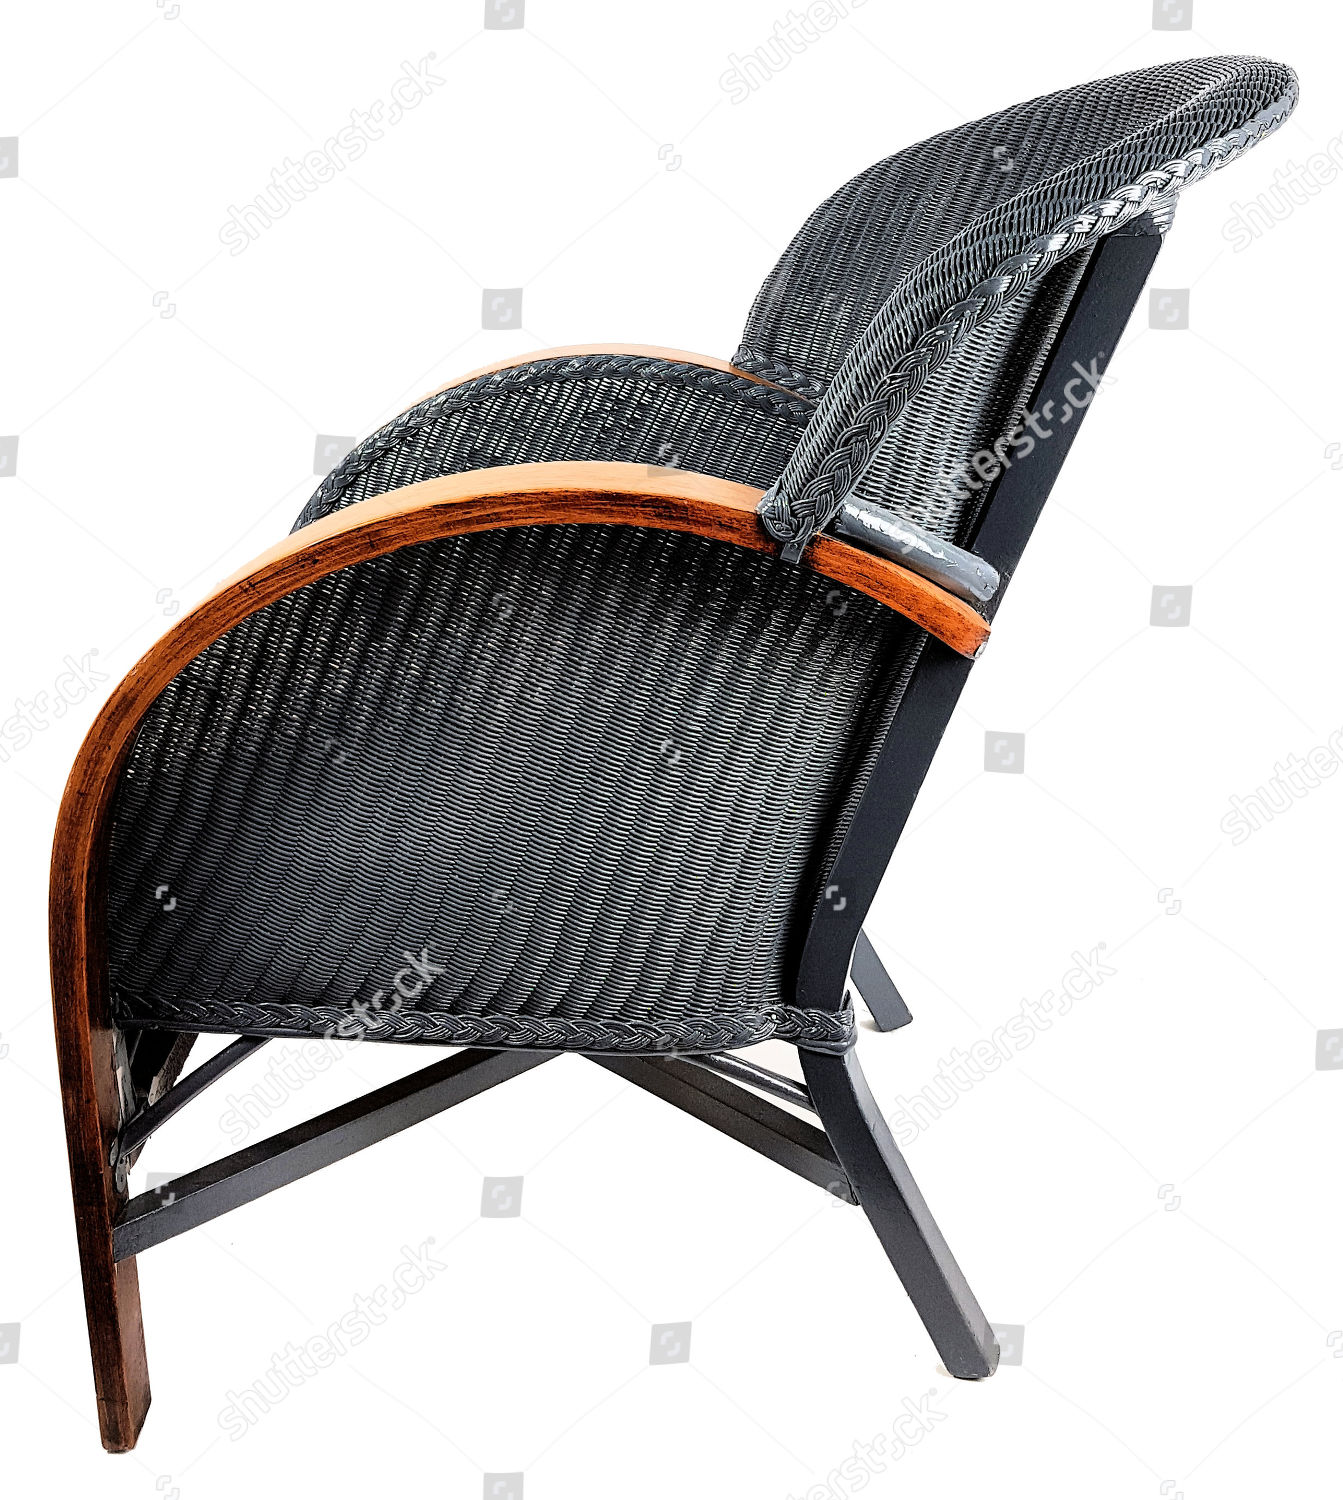 Chair That Featured On Cover Oasis Album Editorial Stock